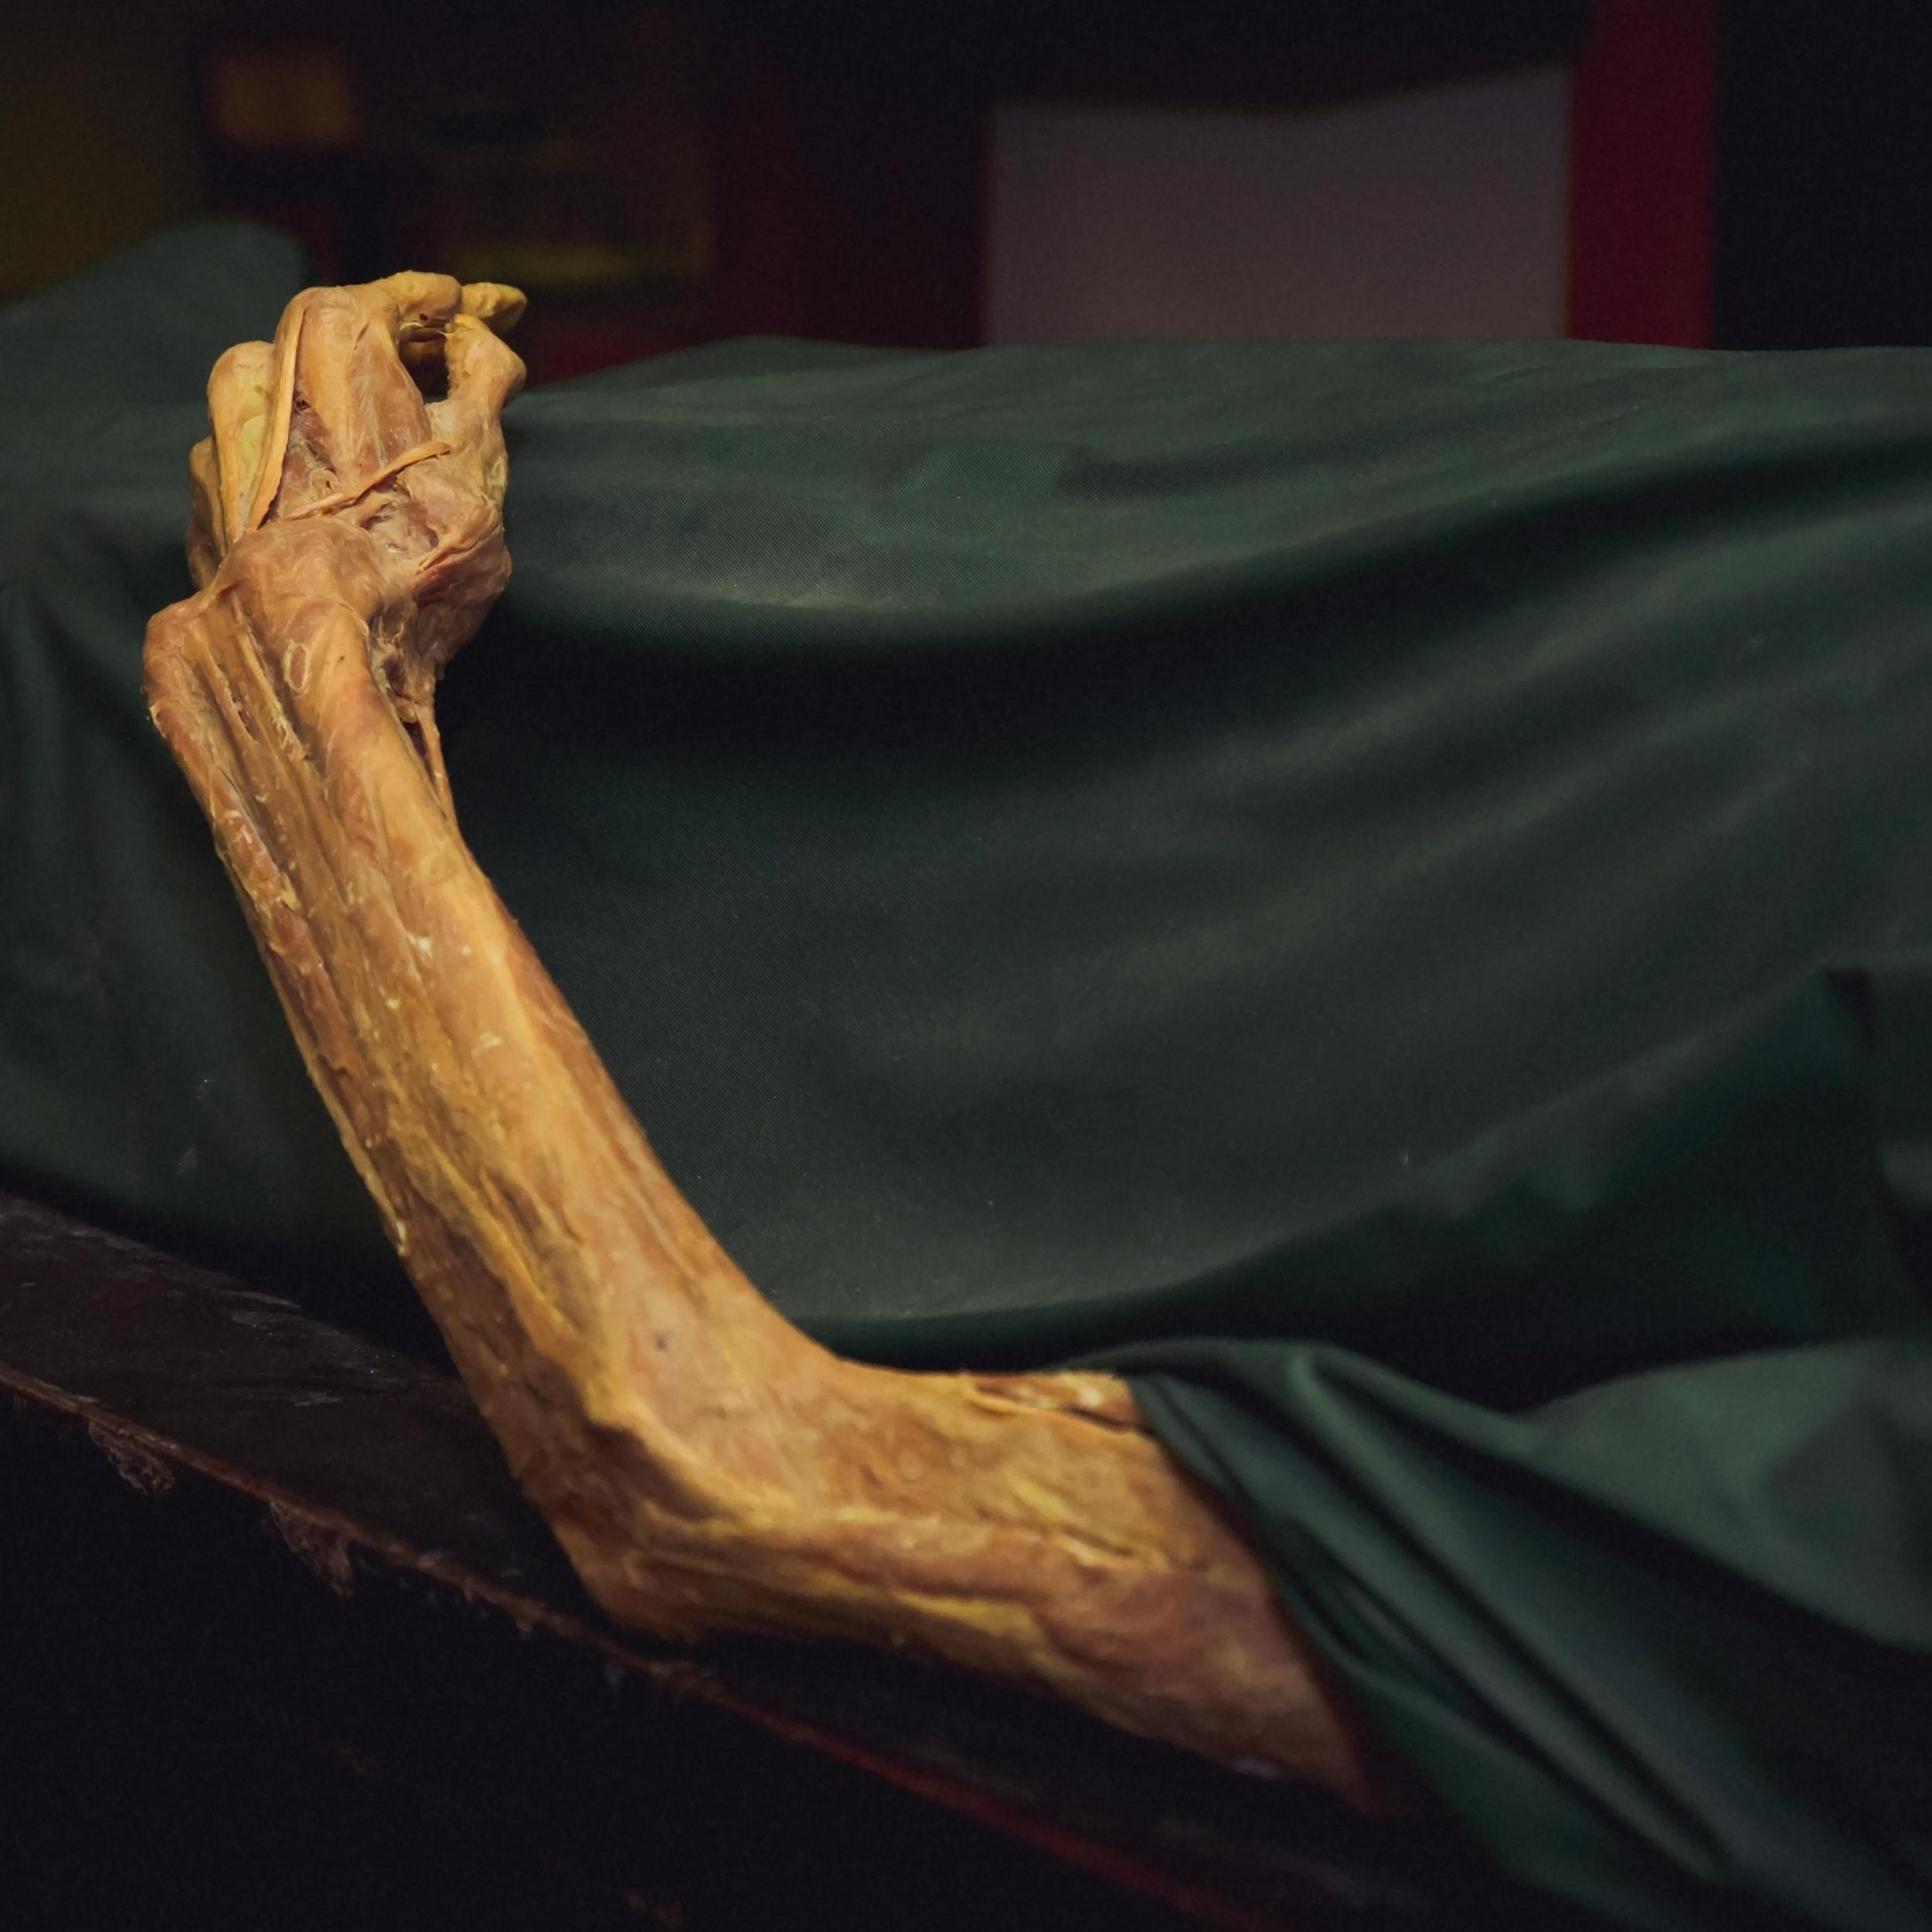 What A Forensic Scientist Doesn't Tell You: 7 Postmortem